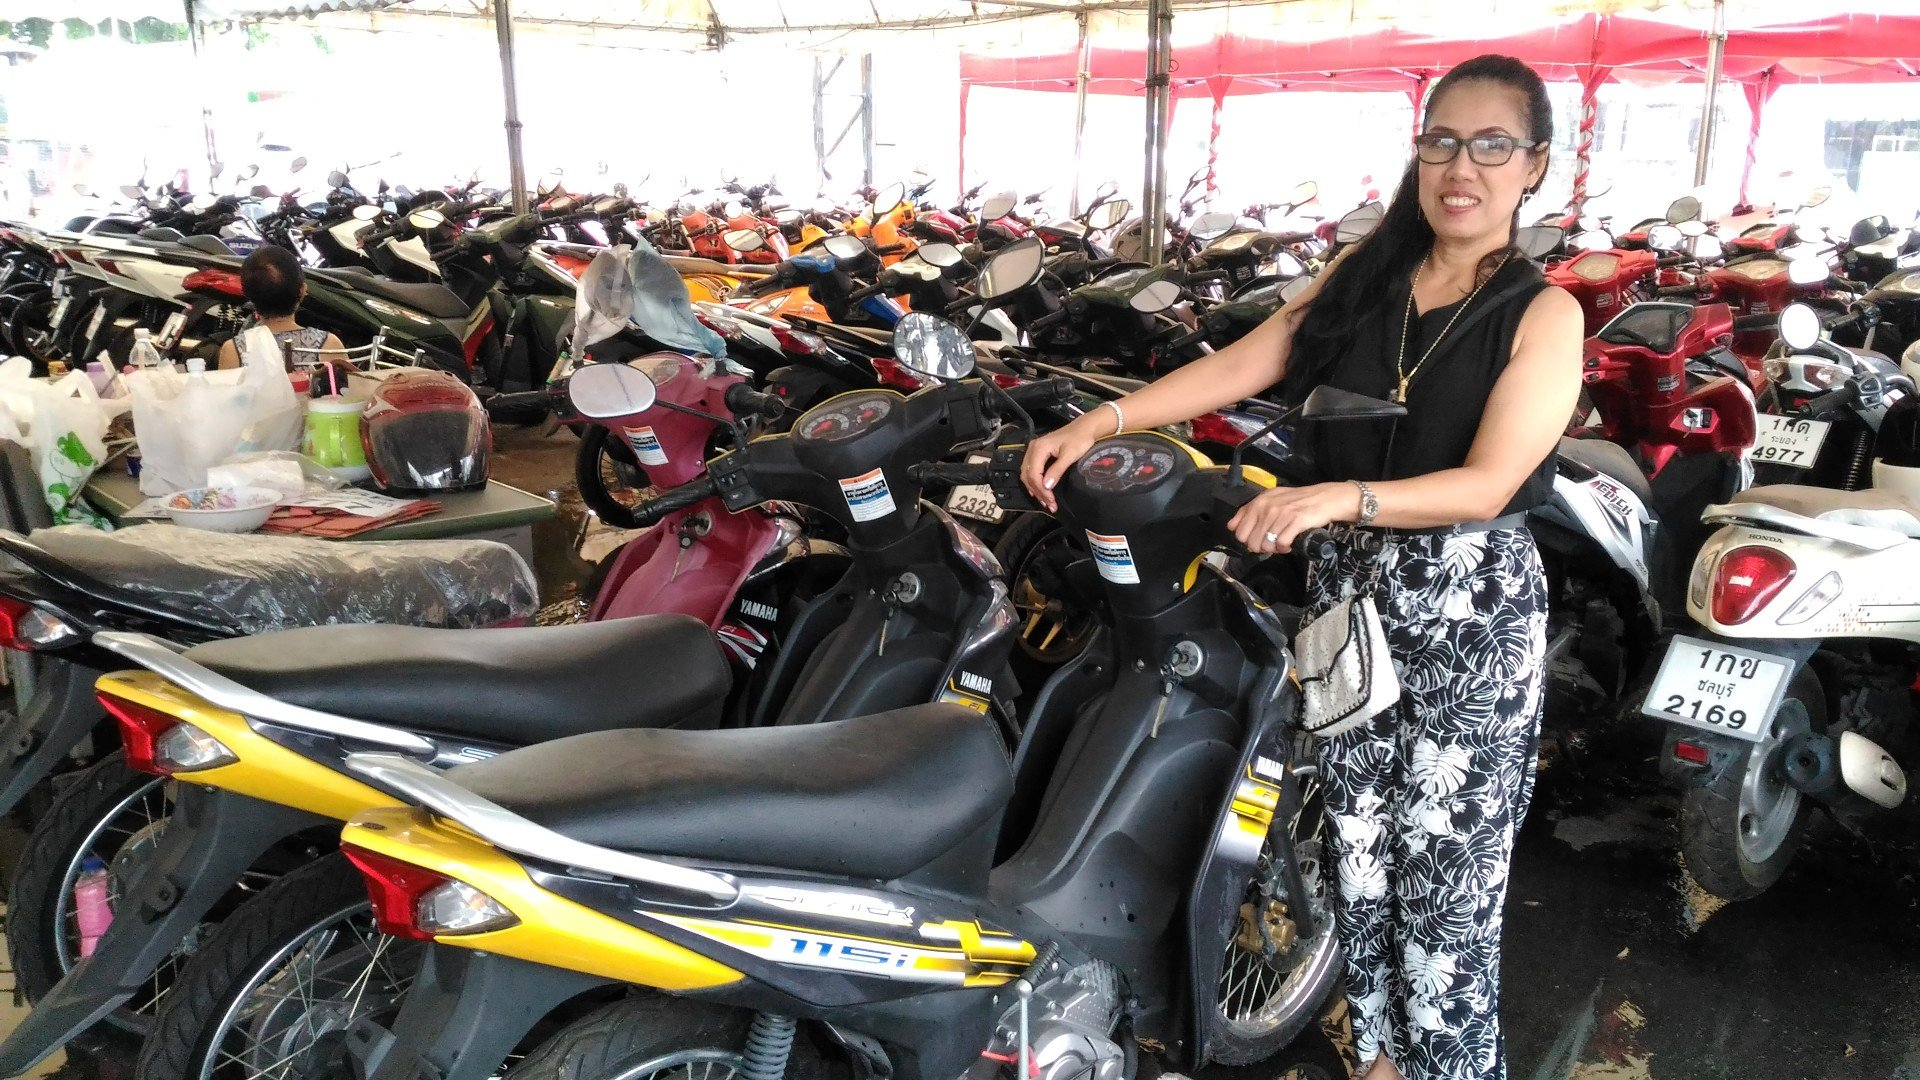 Experience of Buying a Second Hand Bike in Thailand